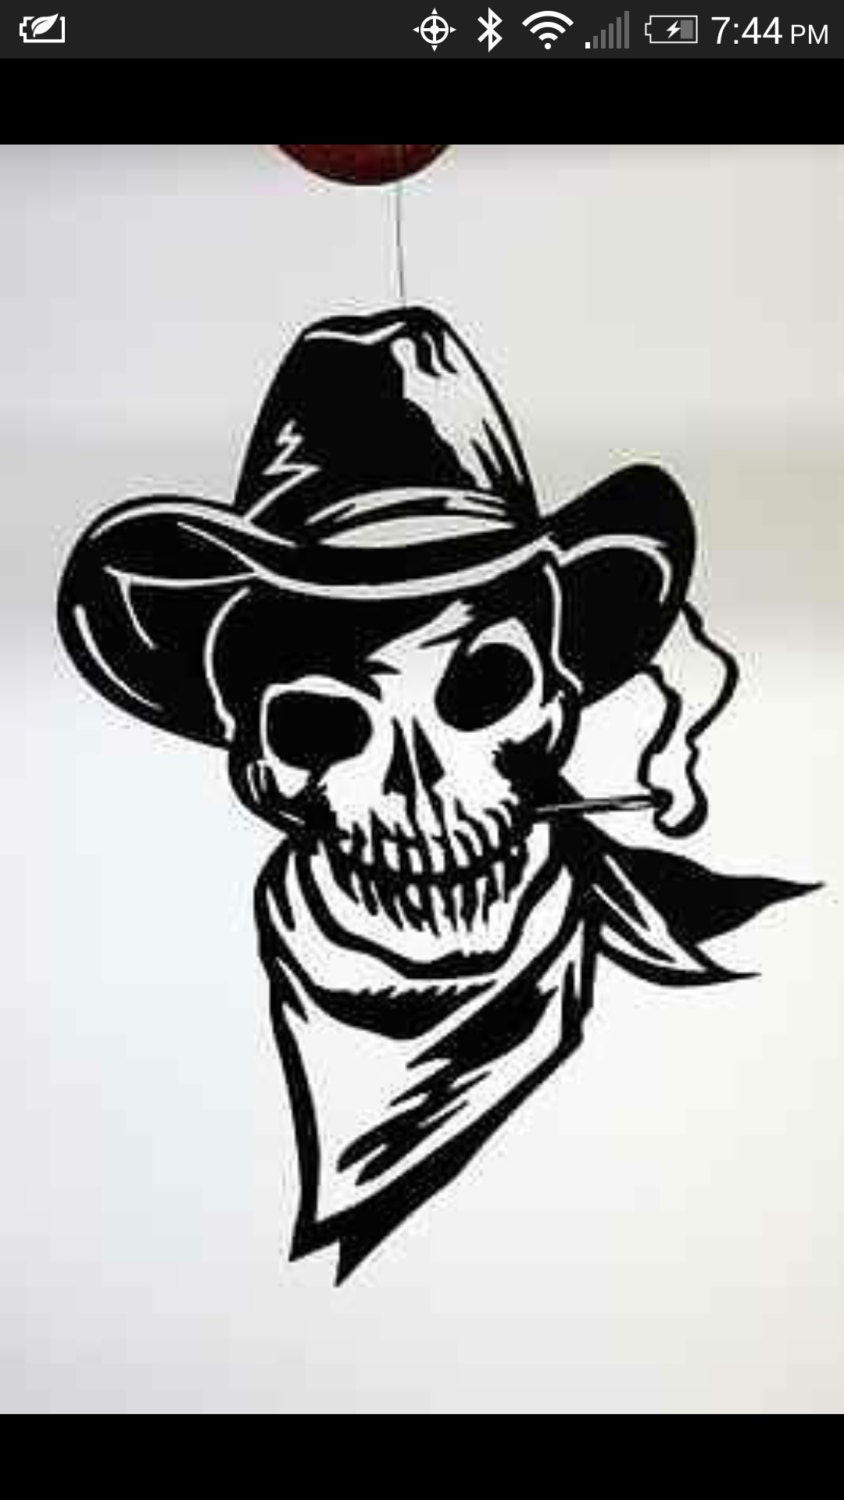 outlaw cowboy skull DXF file for CNC plasma laser and router Outlaw Cowboy Skull